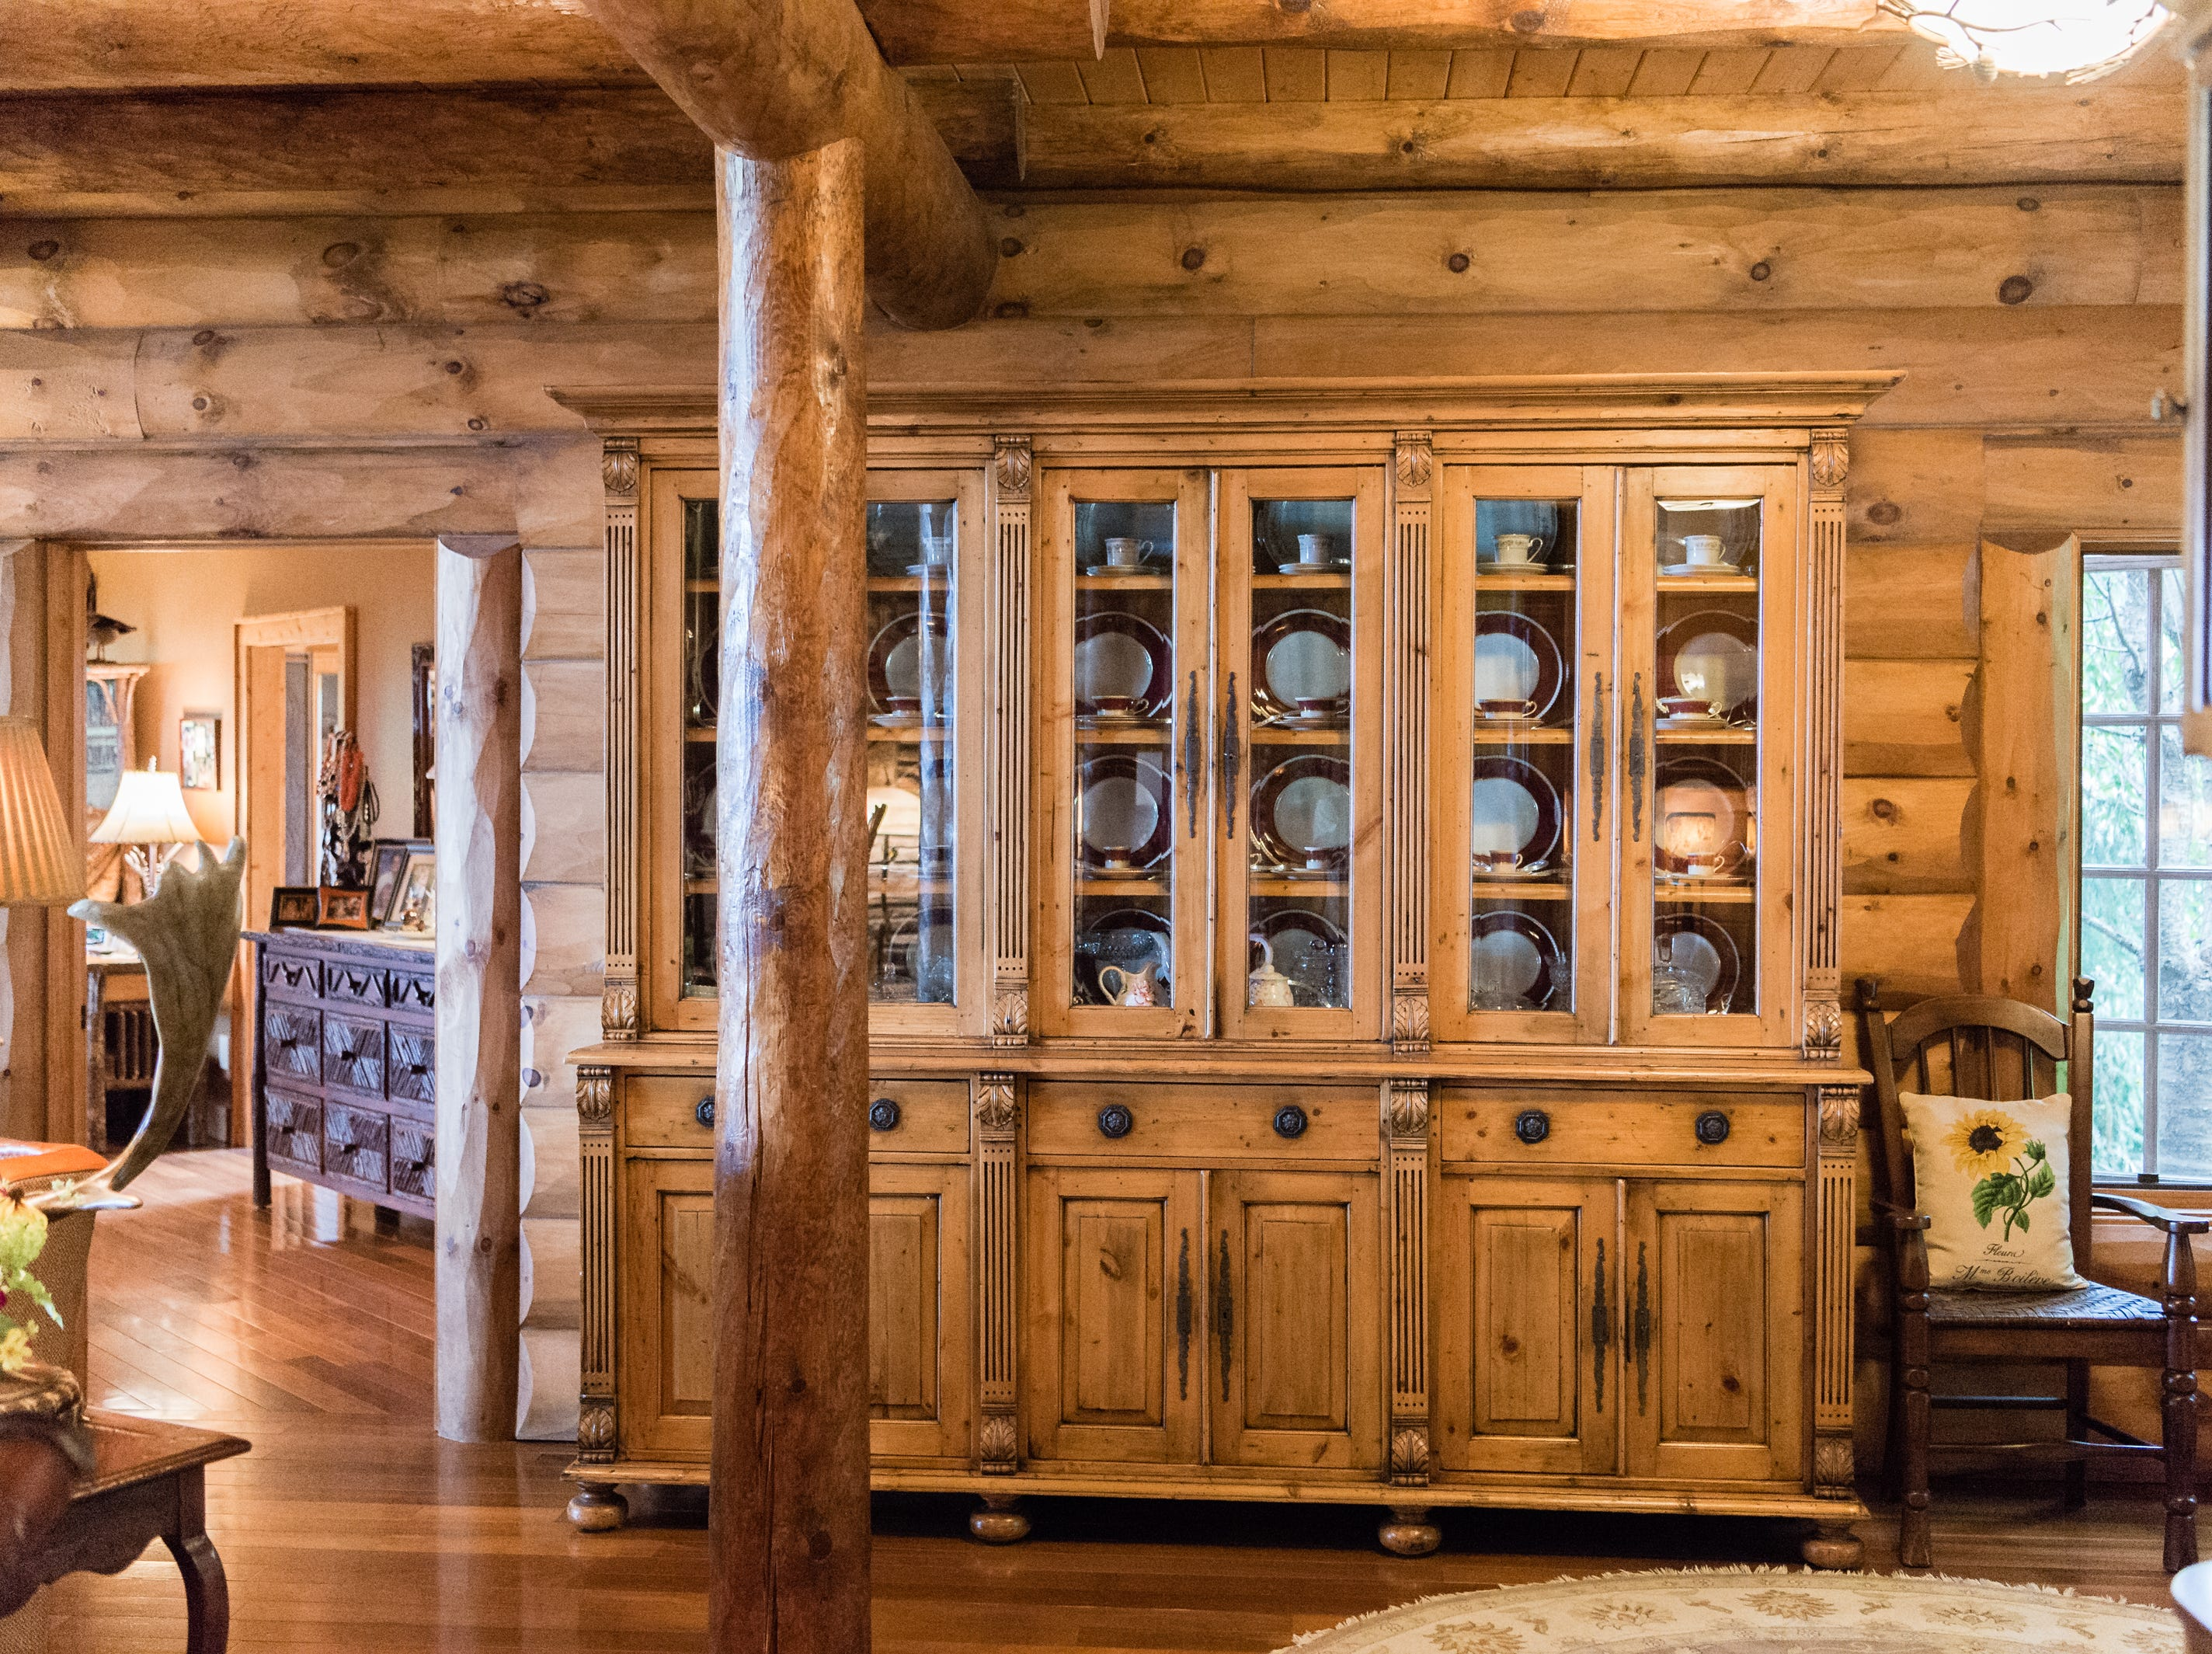 A large cabinet in the entryway of Dan and Belle Fangmeyer's log cabin in Waynesville.